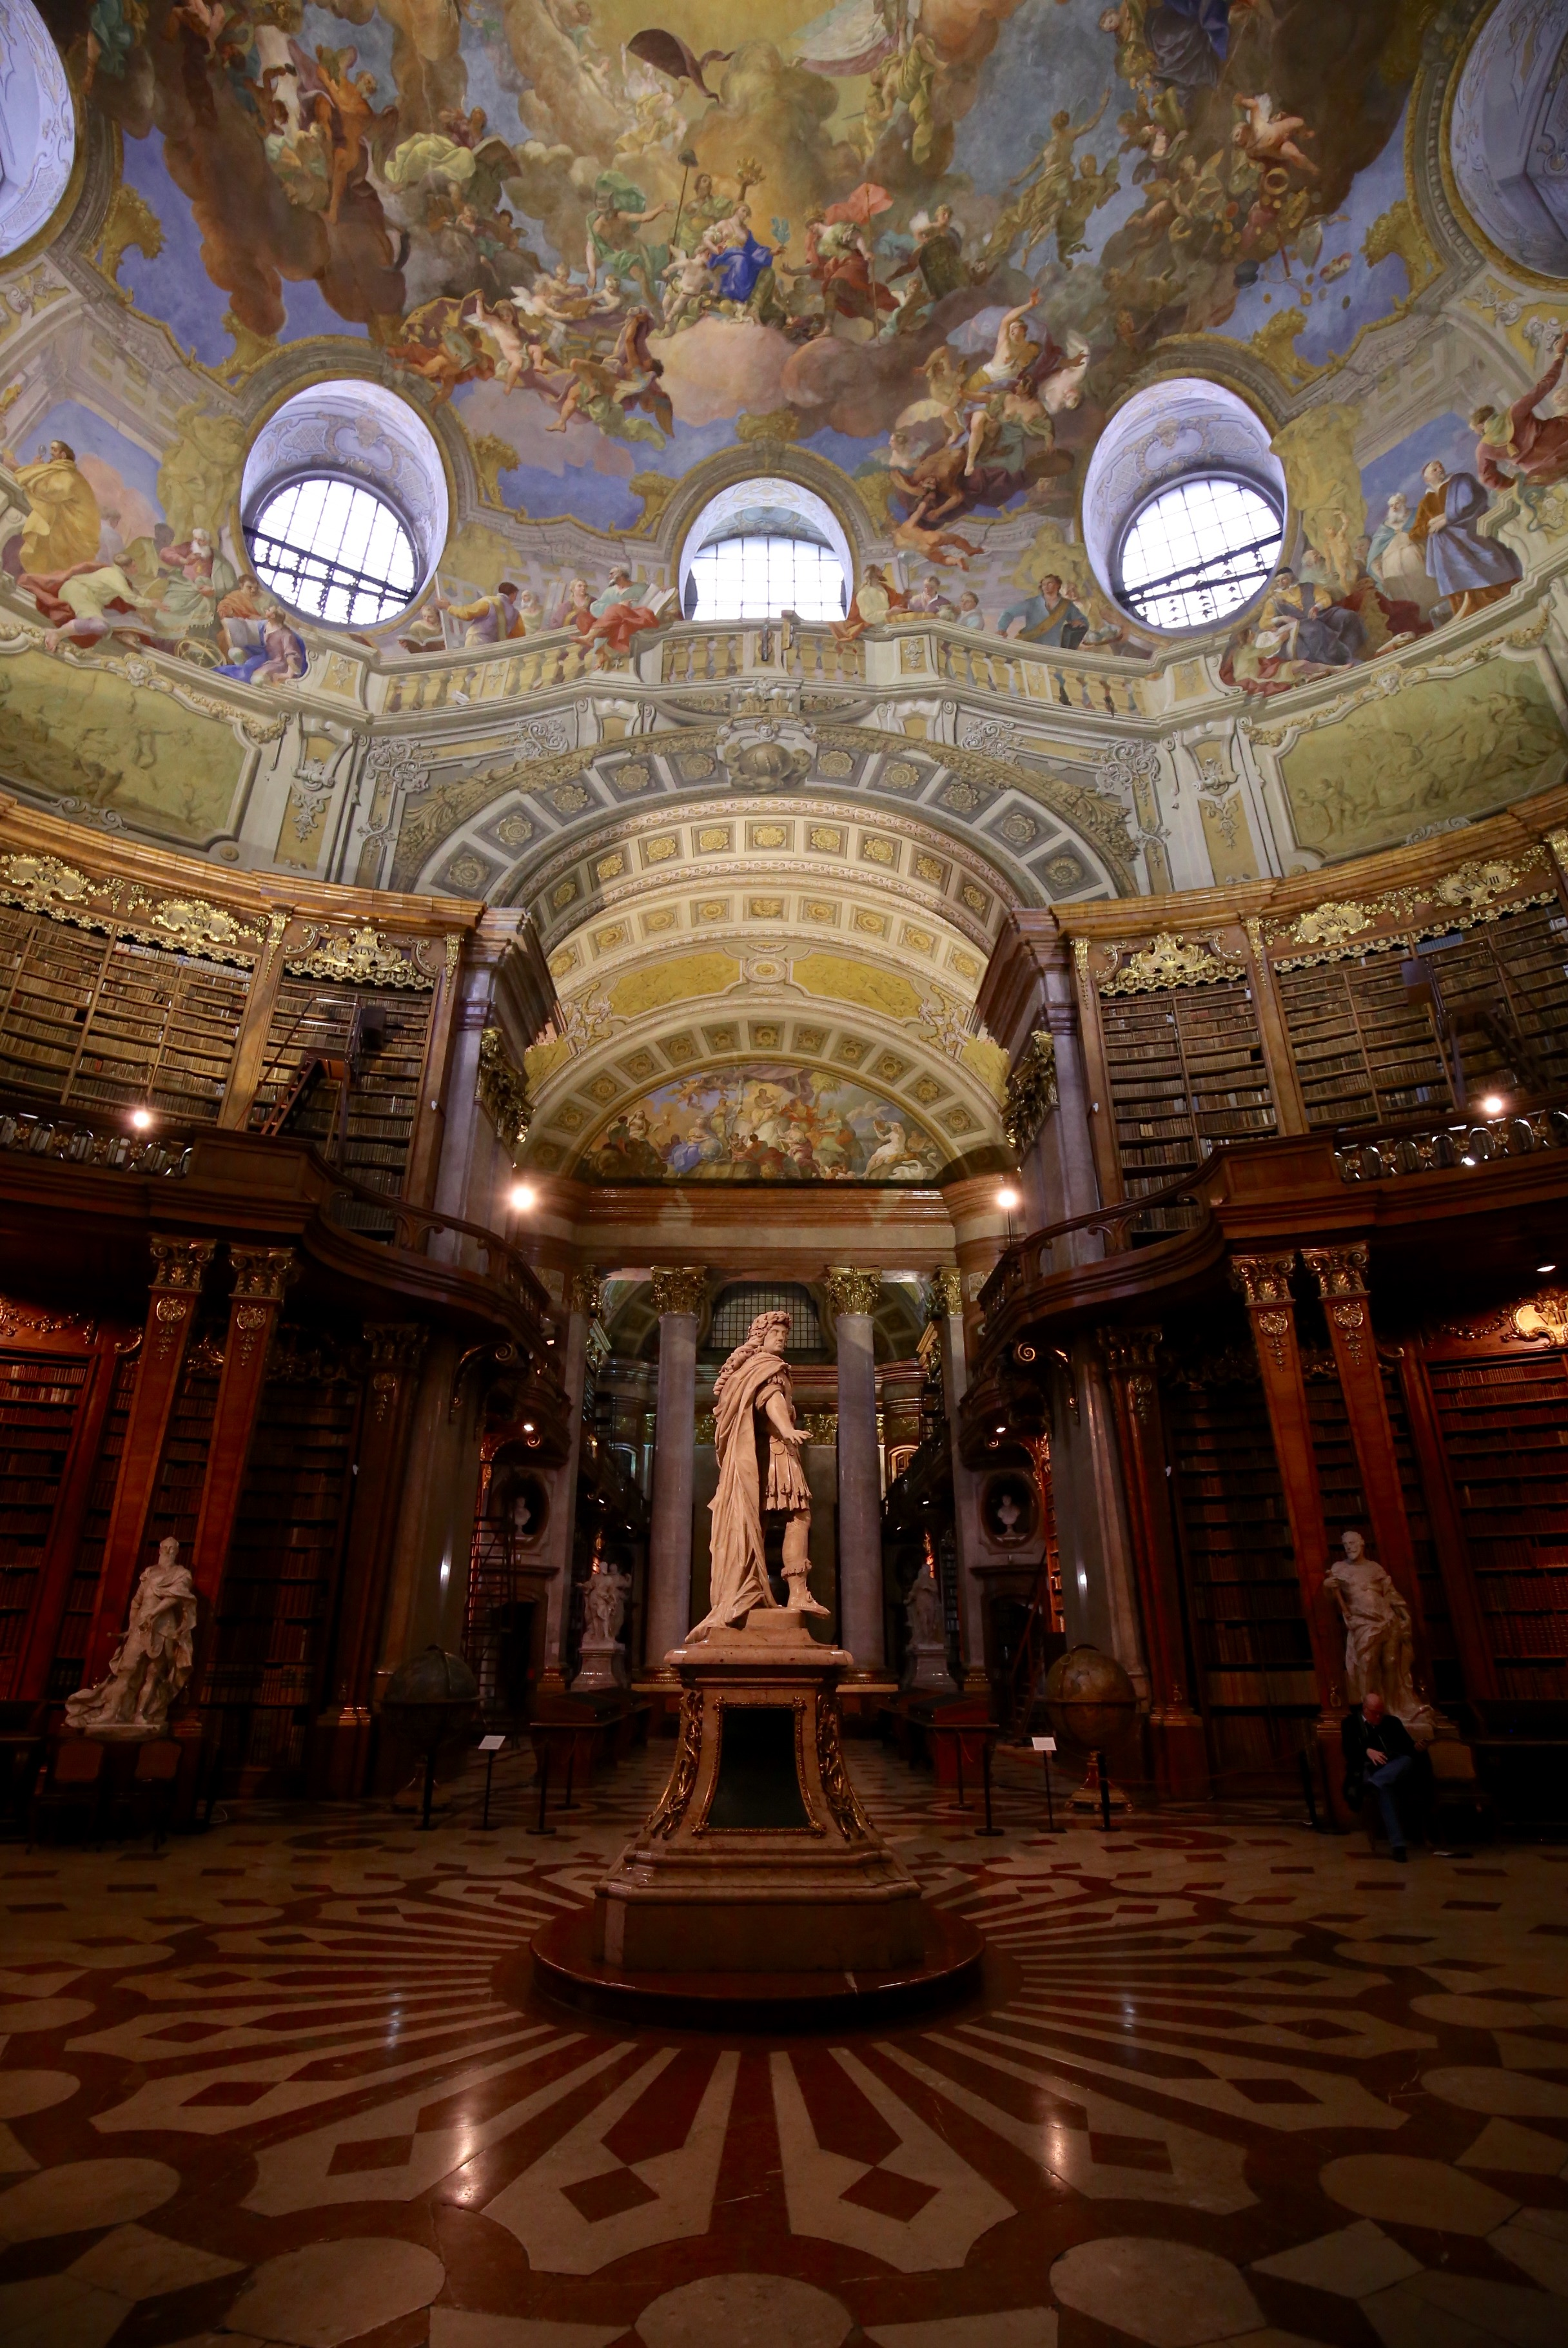 A magnificent old library with a painted ceiling of angels, and marble floors, and books stacked to the roof - The National Archives of Vienna.